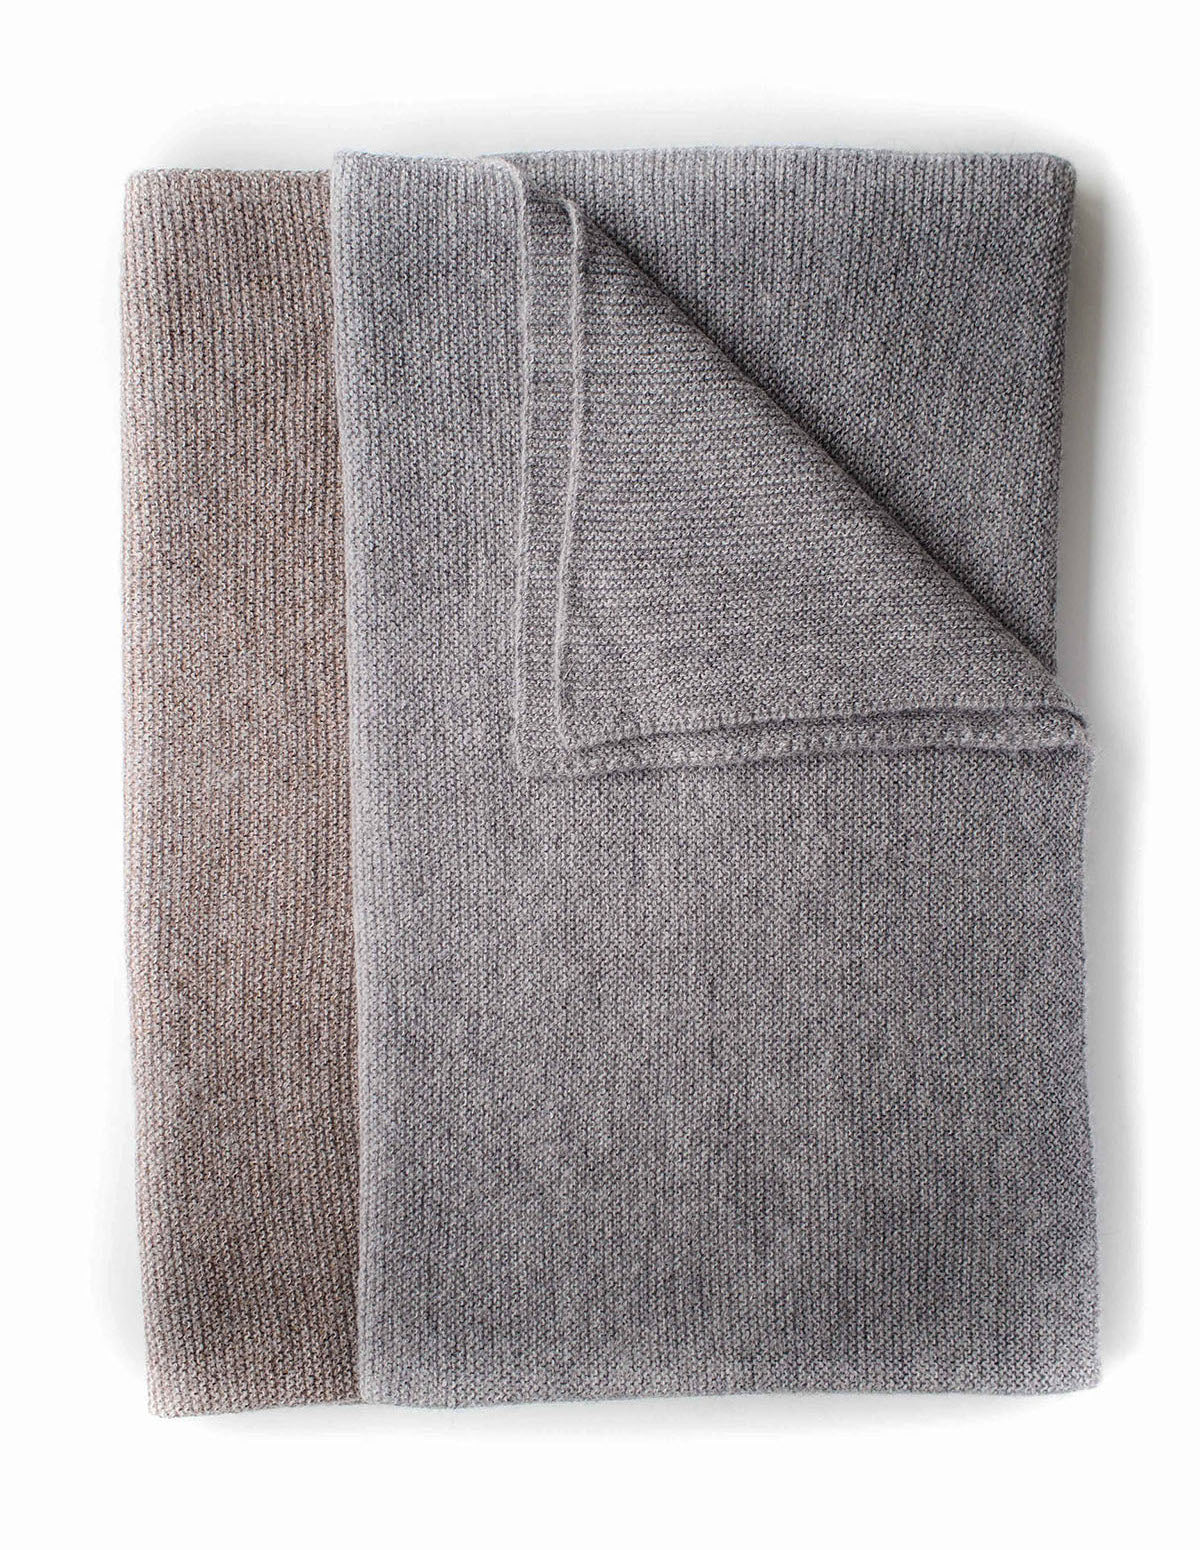 Pure British Alpaca blanket in Taupe & Grey by Ally Bee Knitwear